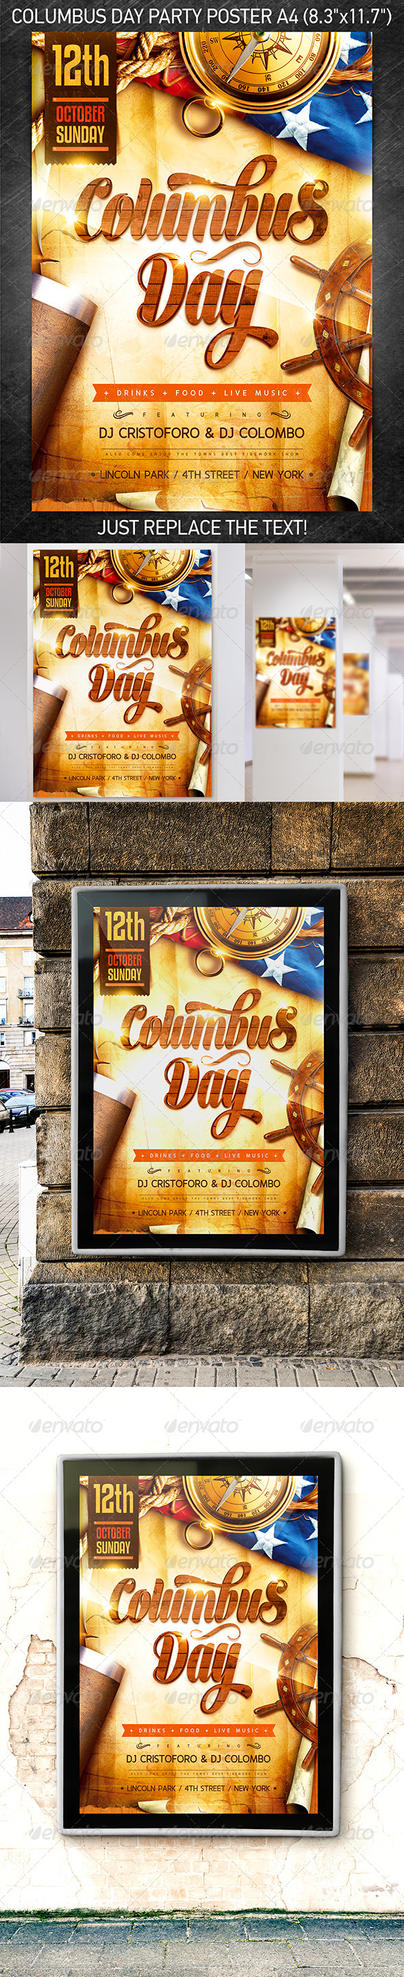 Columbus Day Party Poster, PSD Template by 4ustudio